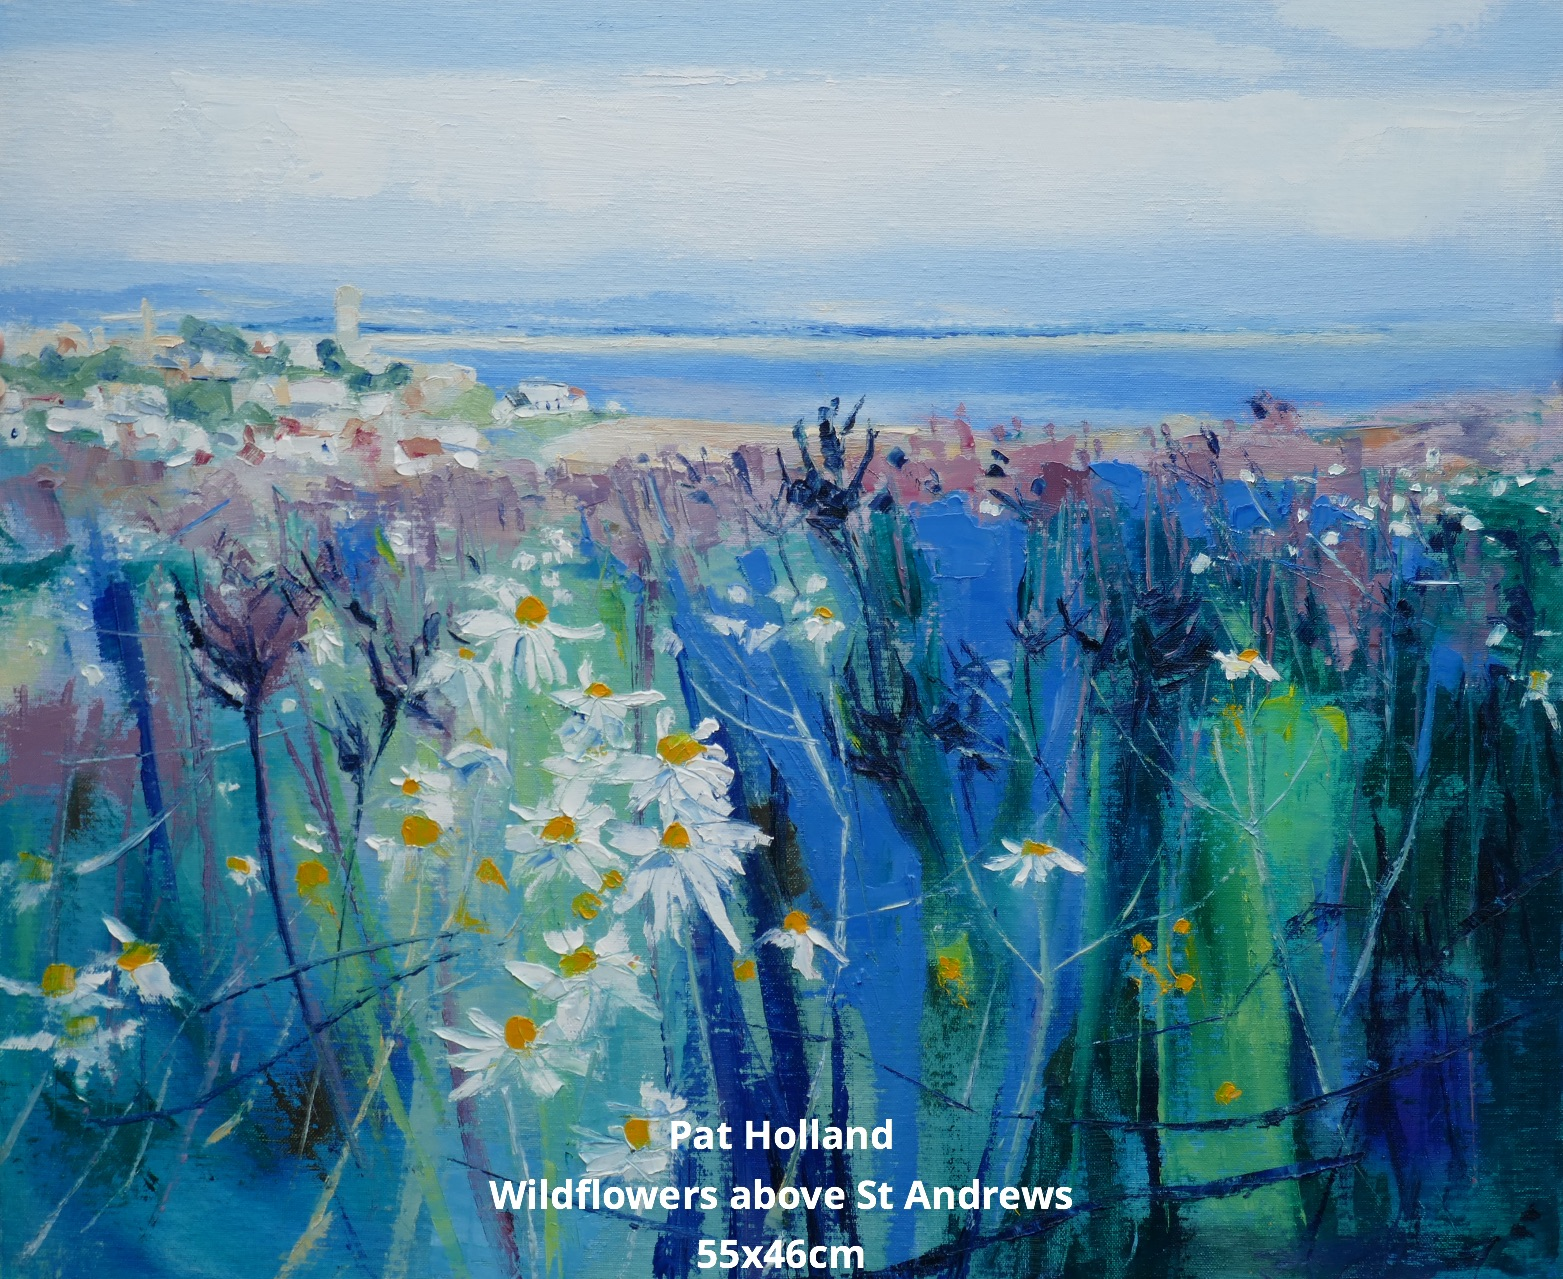 Wildflowers above St Andrews